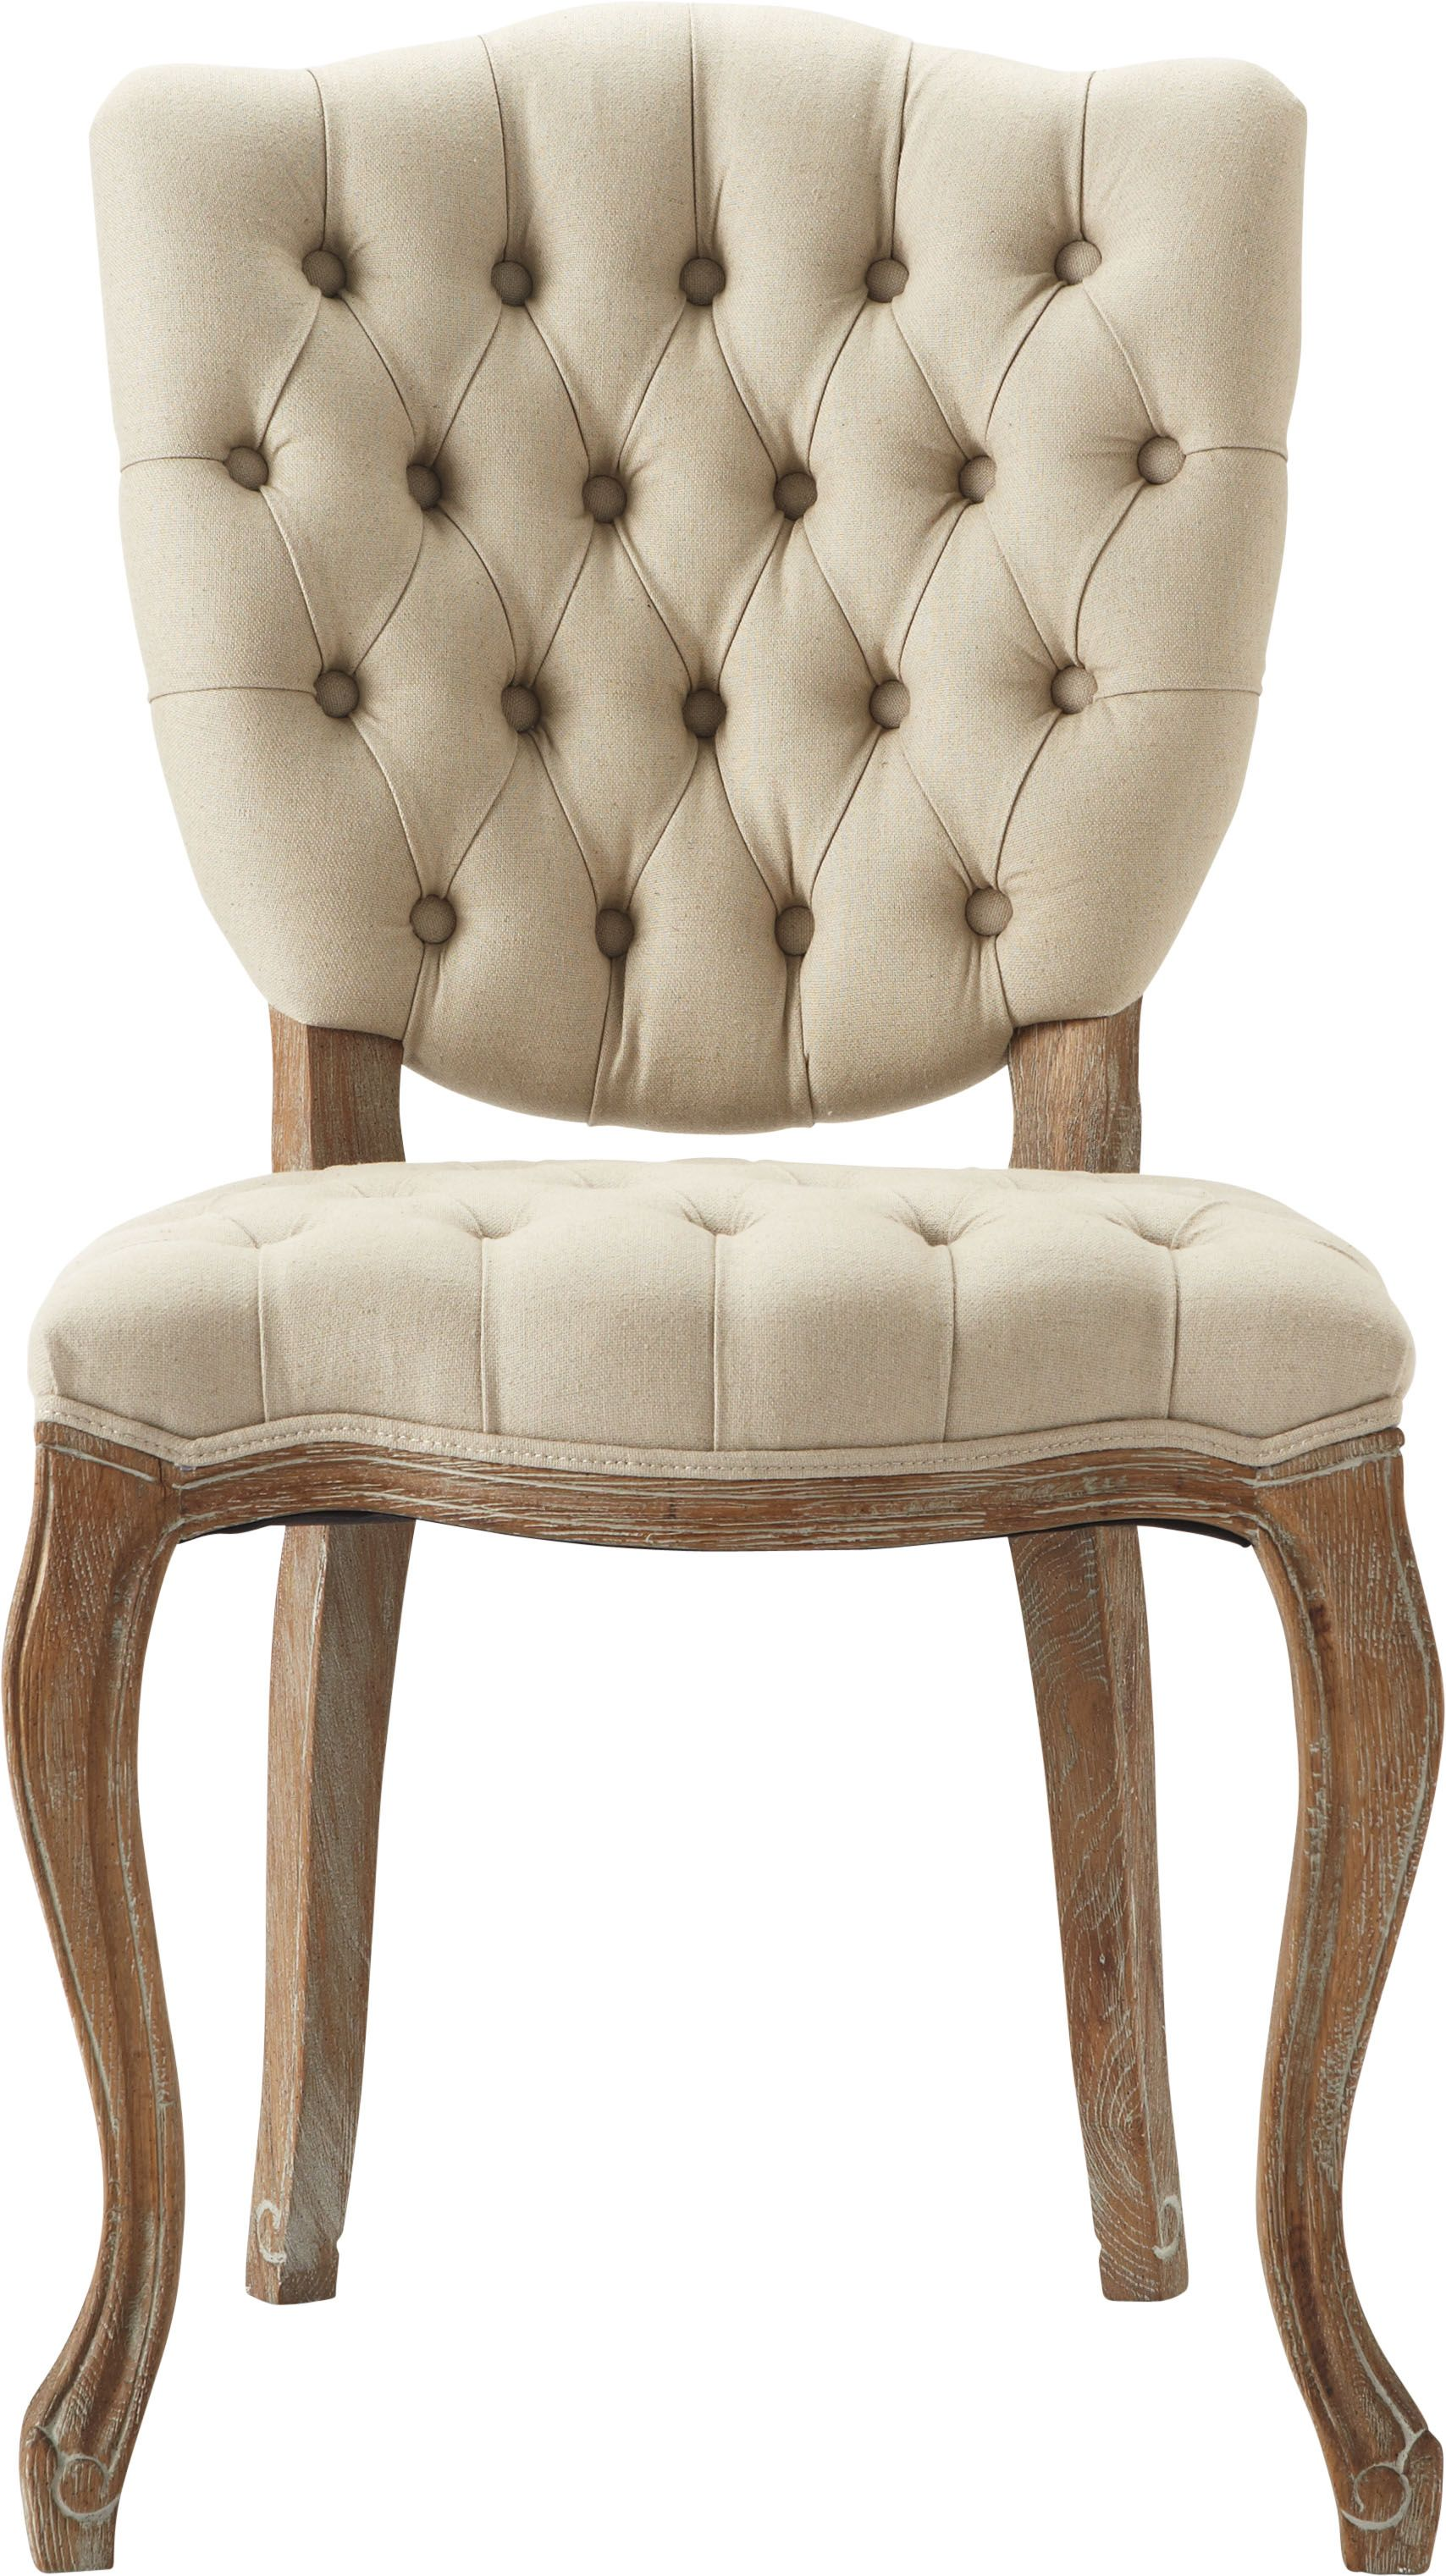 Tufted linen A distressed Oak frame The Ava Dining Chair